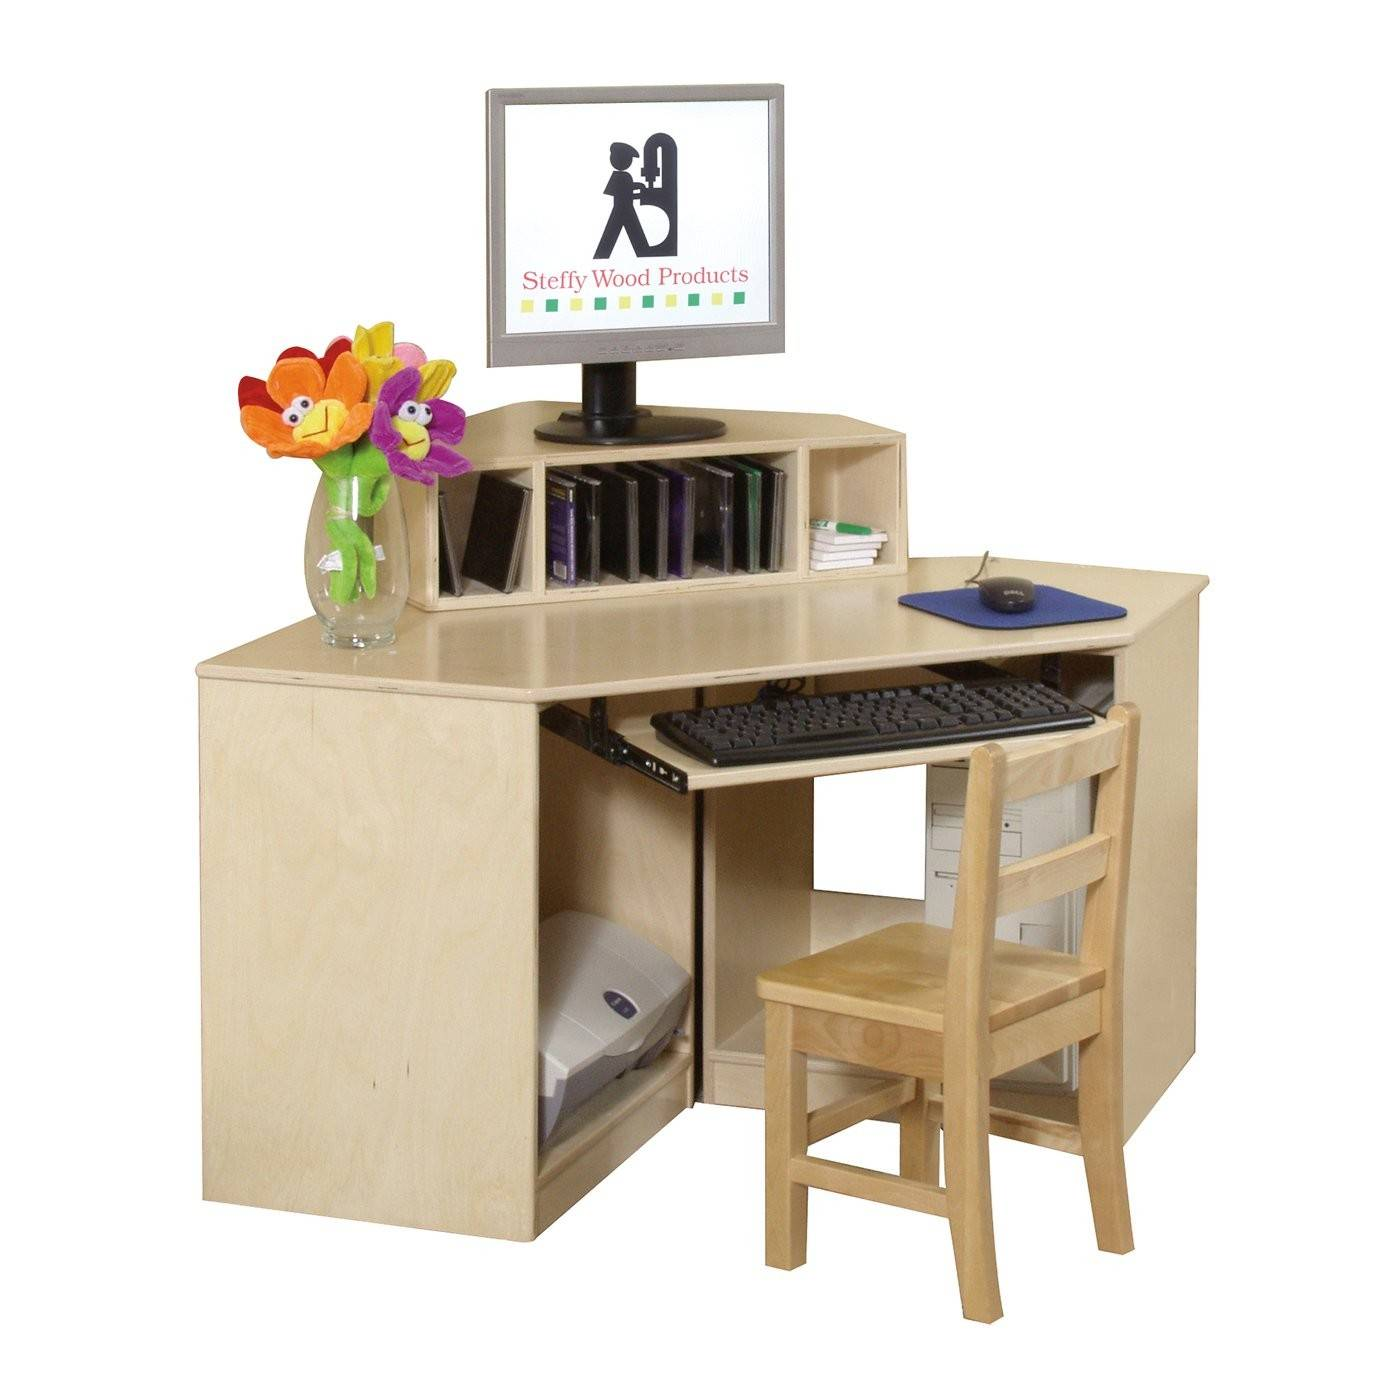 Wood Products Swp Corner Computer Center Kids Desk Atg Stores